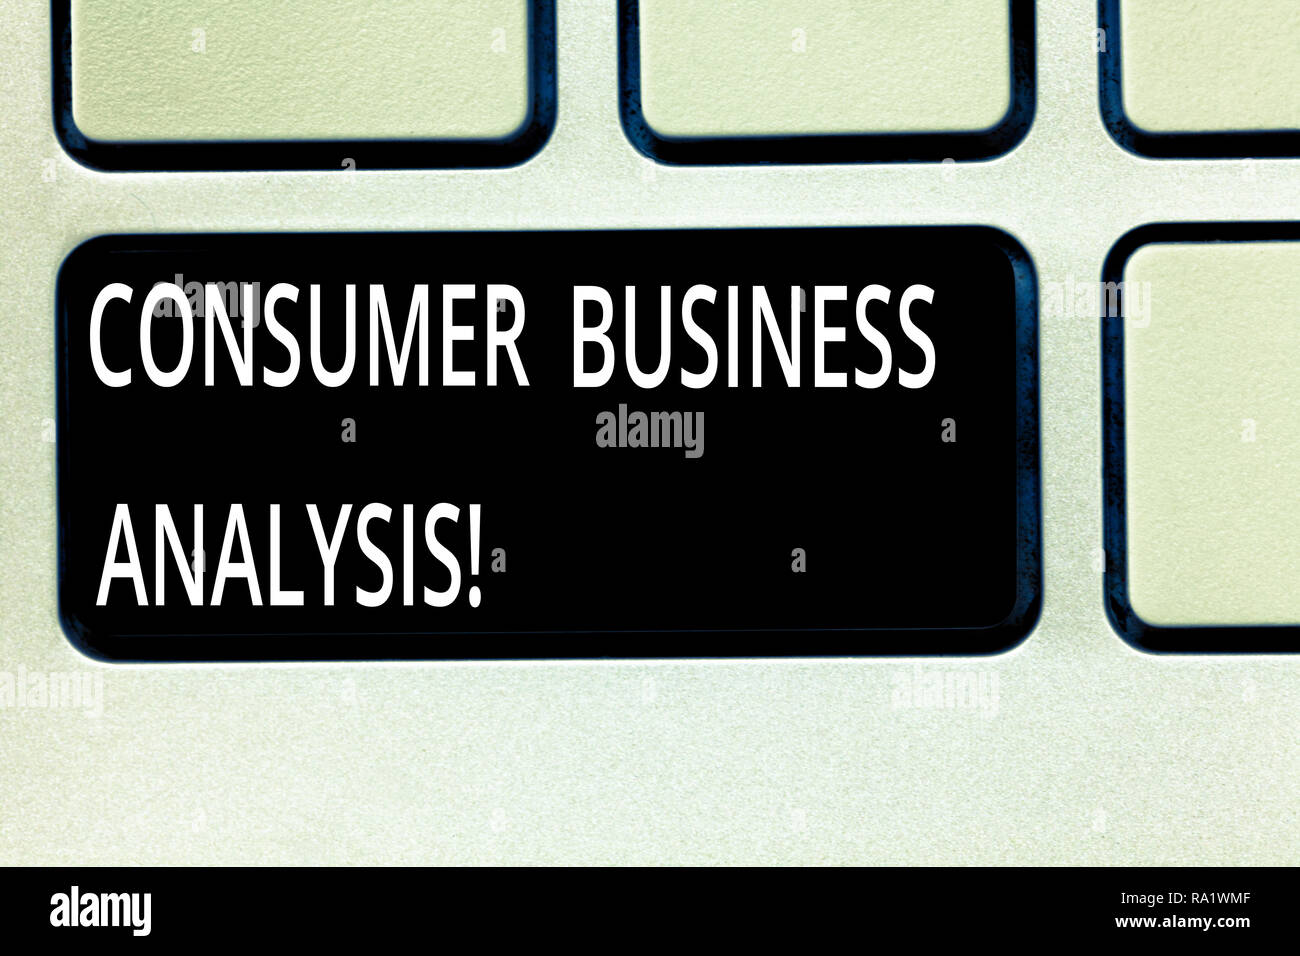 approaches to customer analysis